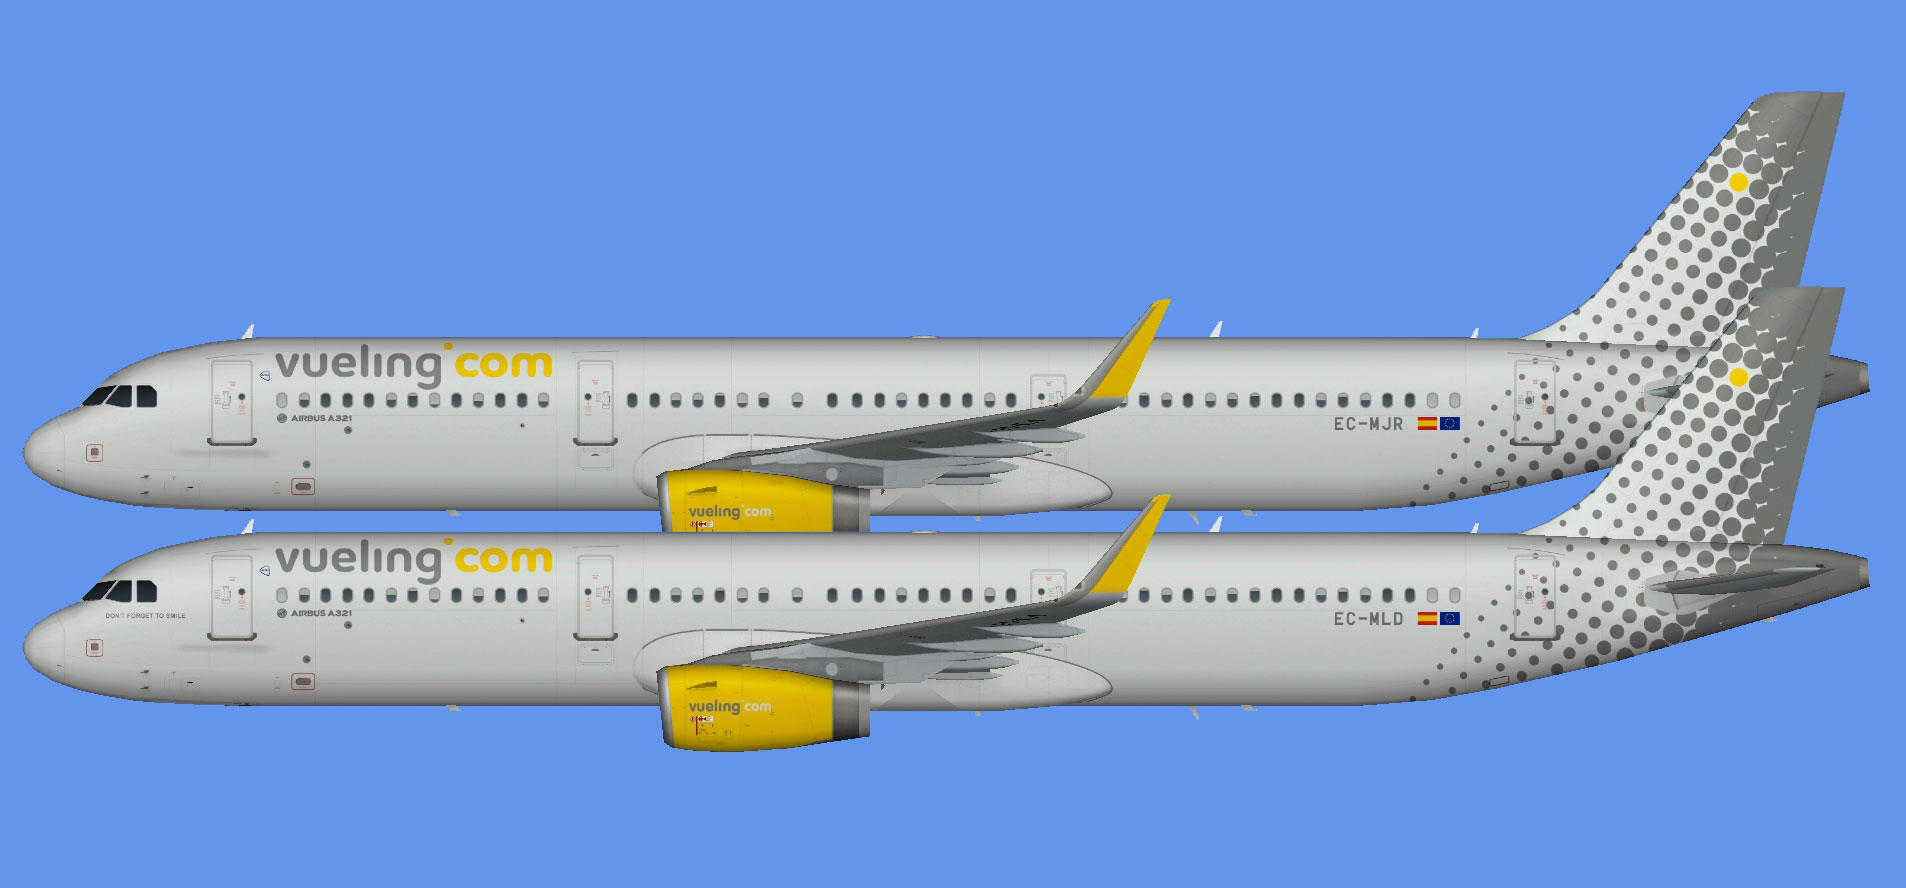 Vueling Airbus A321